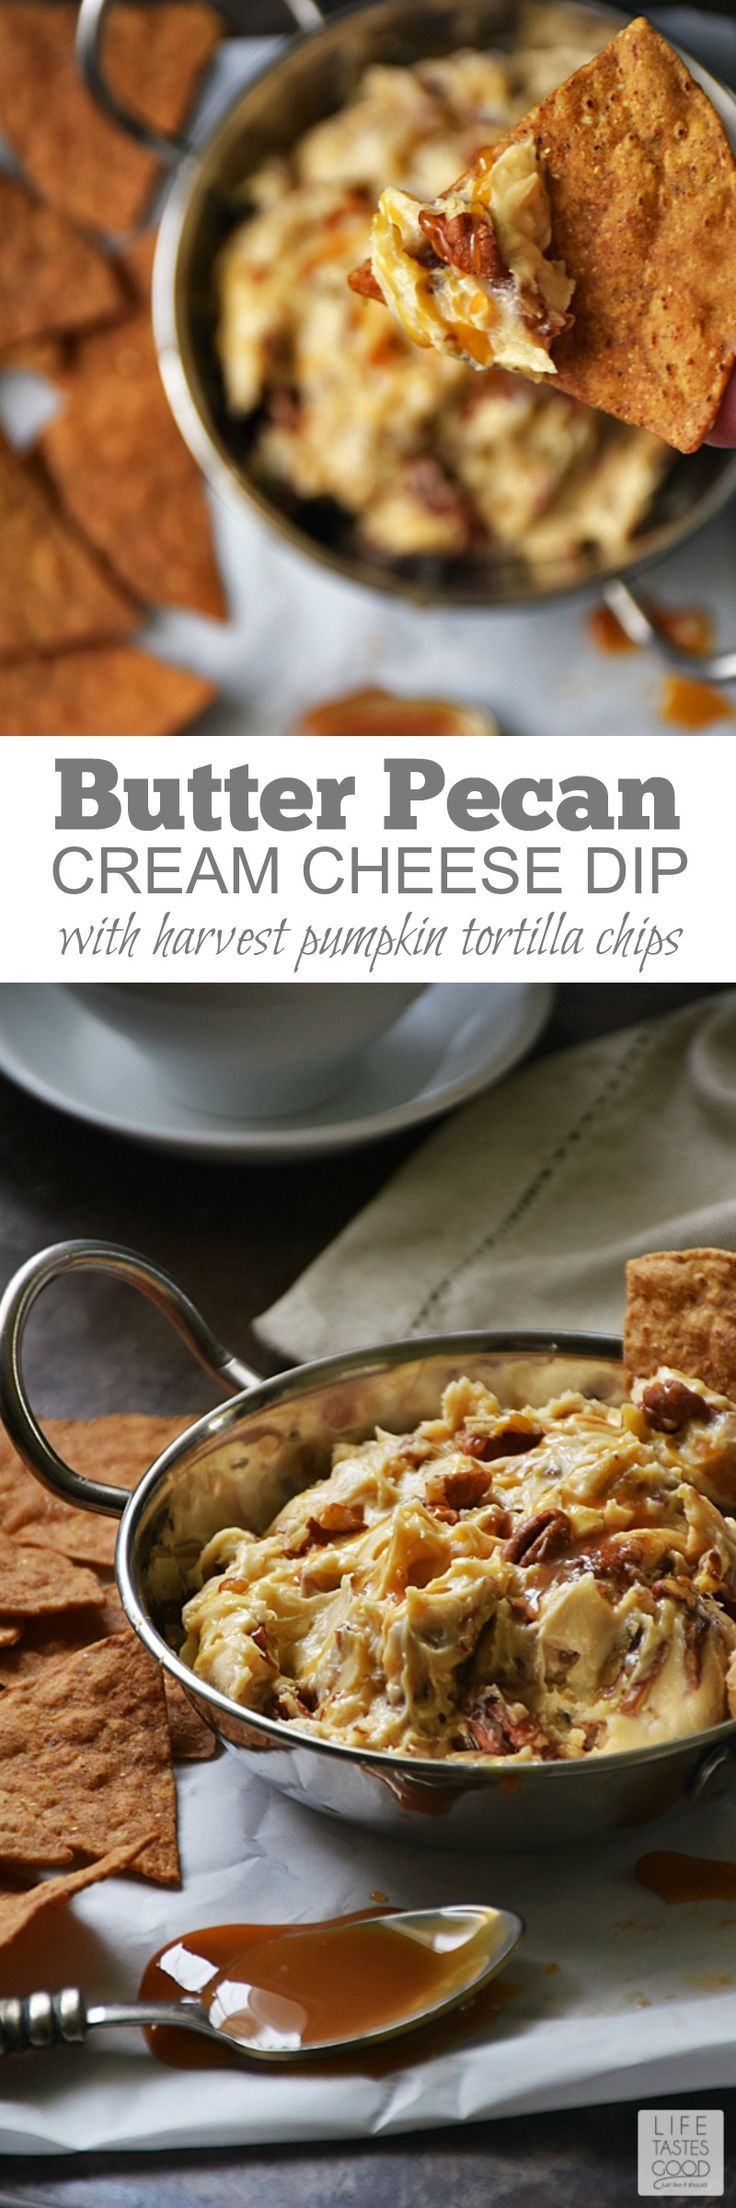 Butter Pecan Cream Cheese Dip | by Life Tastes Good with Harvest Pumpkin Tortilla Chips is like eating a creamy Pumpkin Pecan Pie, only better, because this sweet treat is super easy to make! #sponsored #LTGrecipes #FoodShouldTasteGood #dessertdip #butterpecan